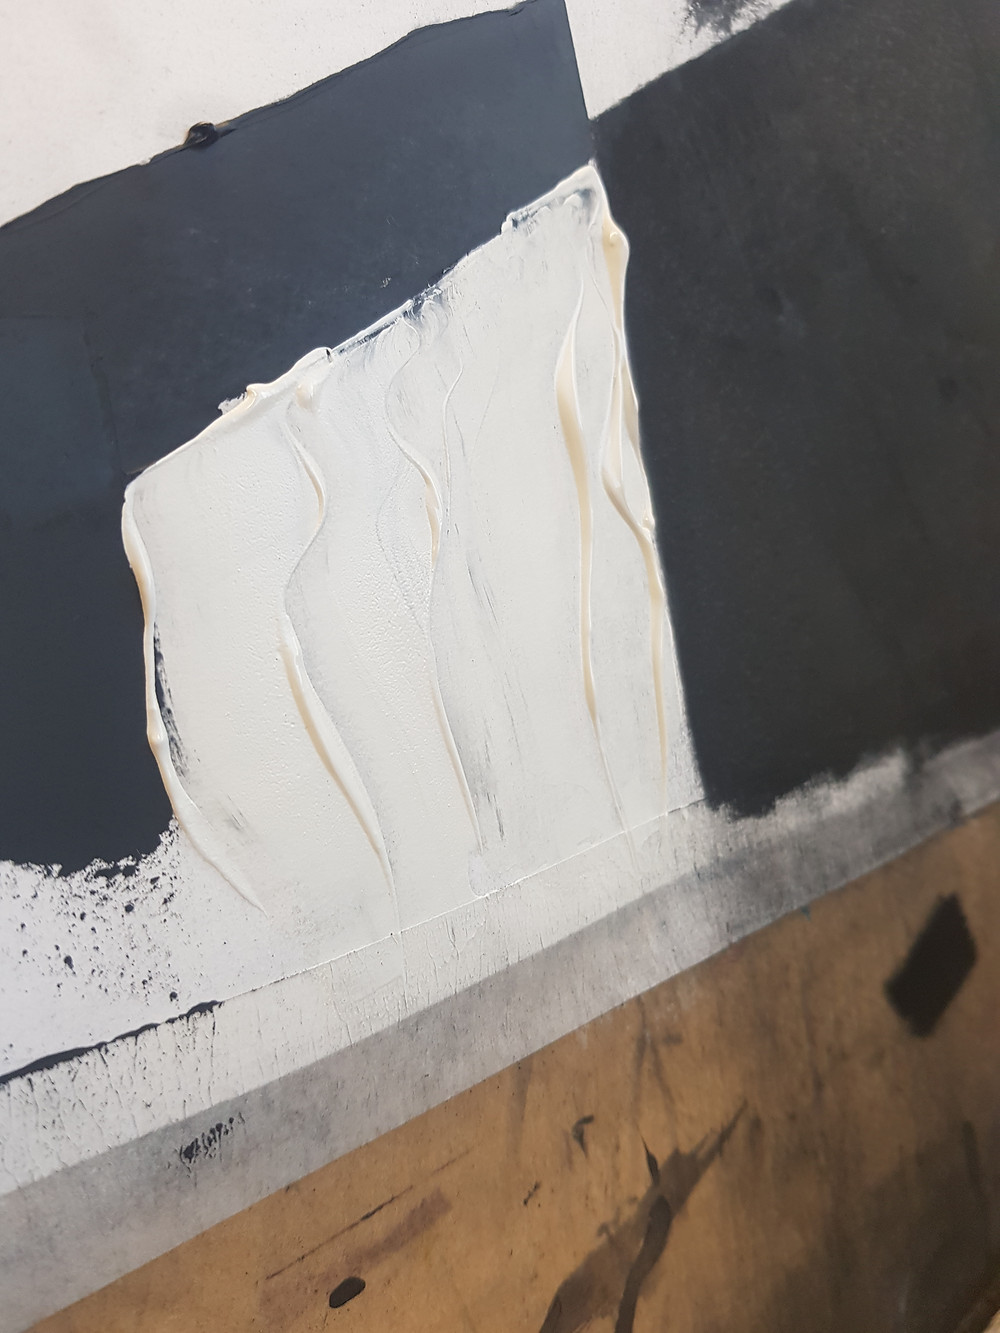 Oil paints curling around the knifes edge when applied